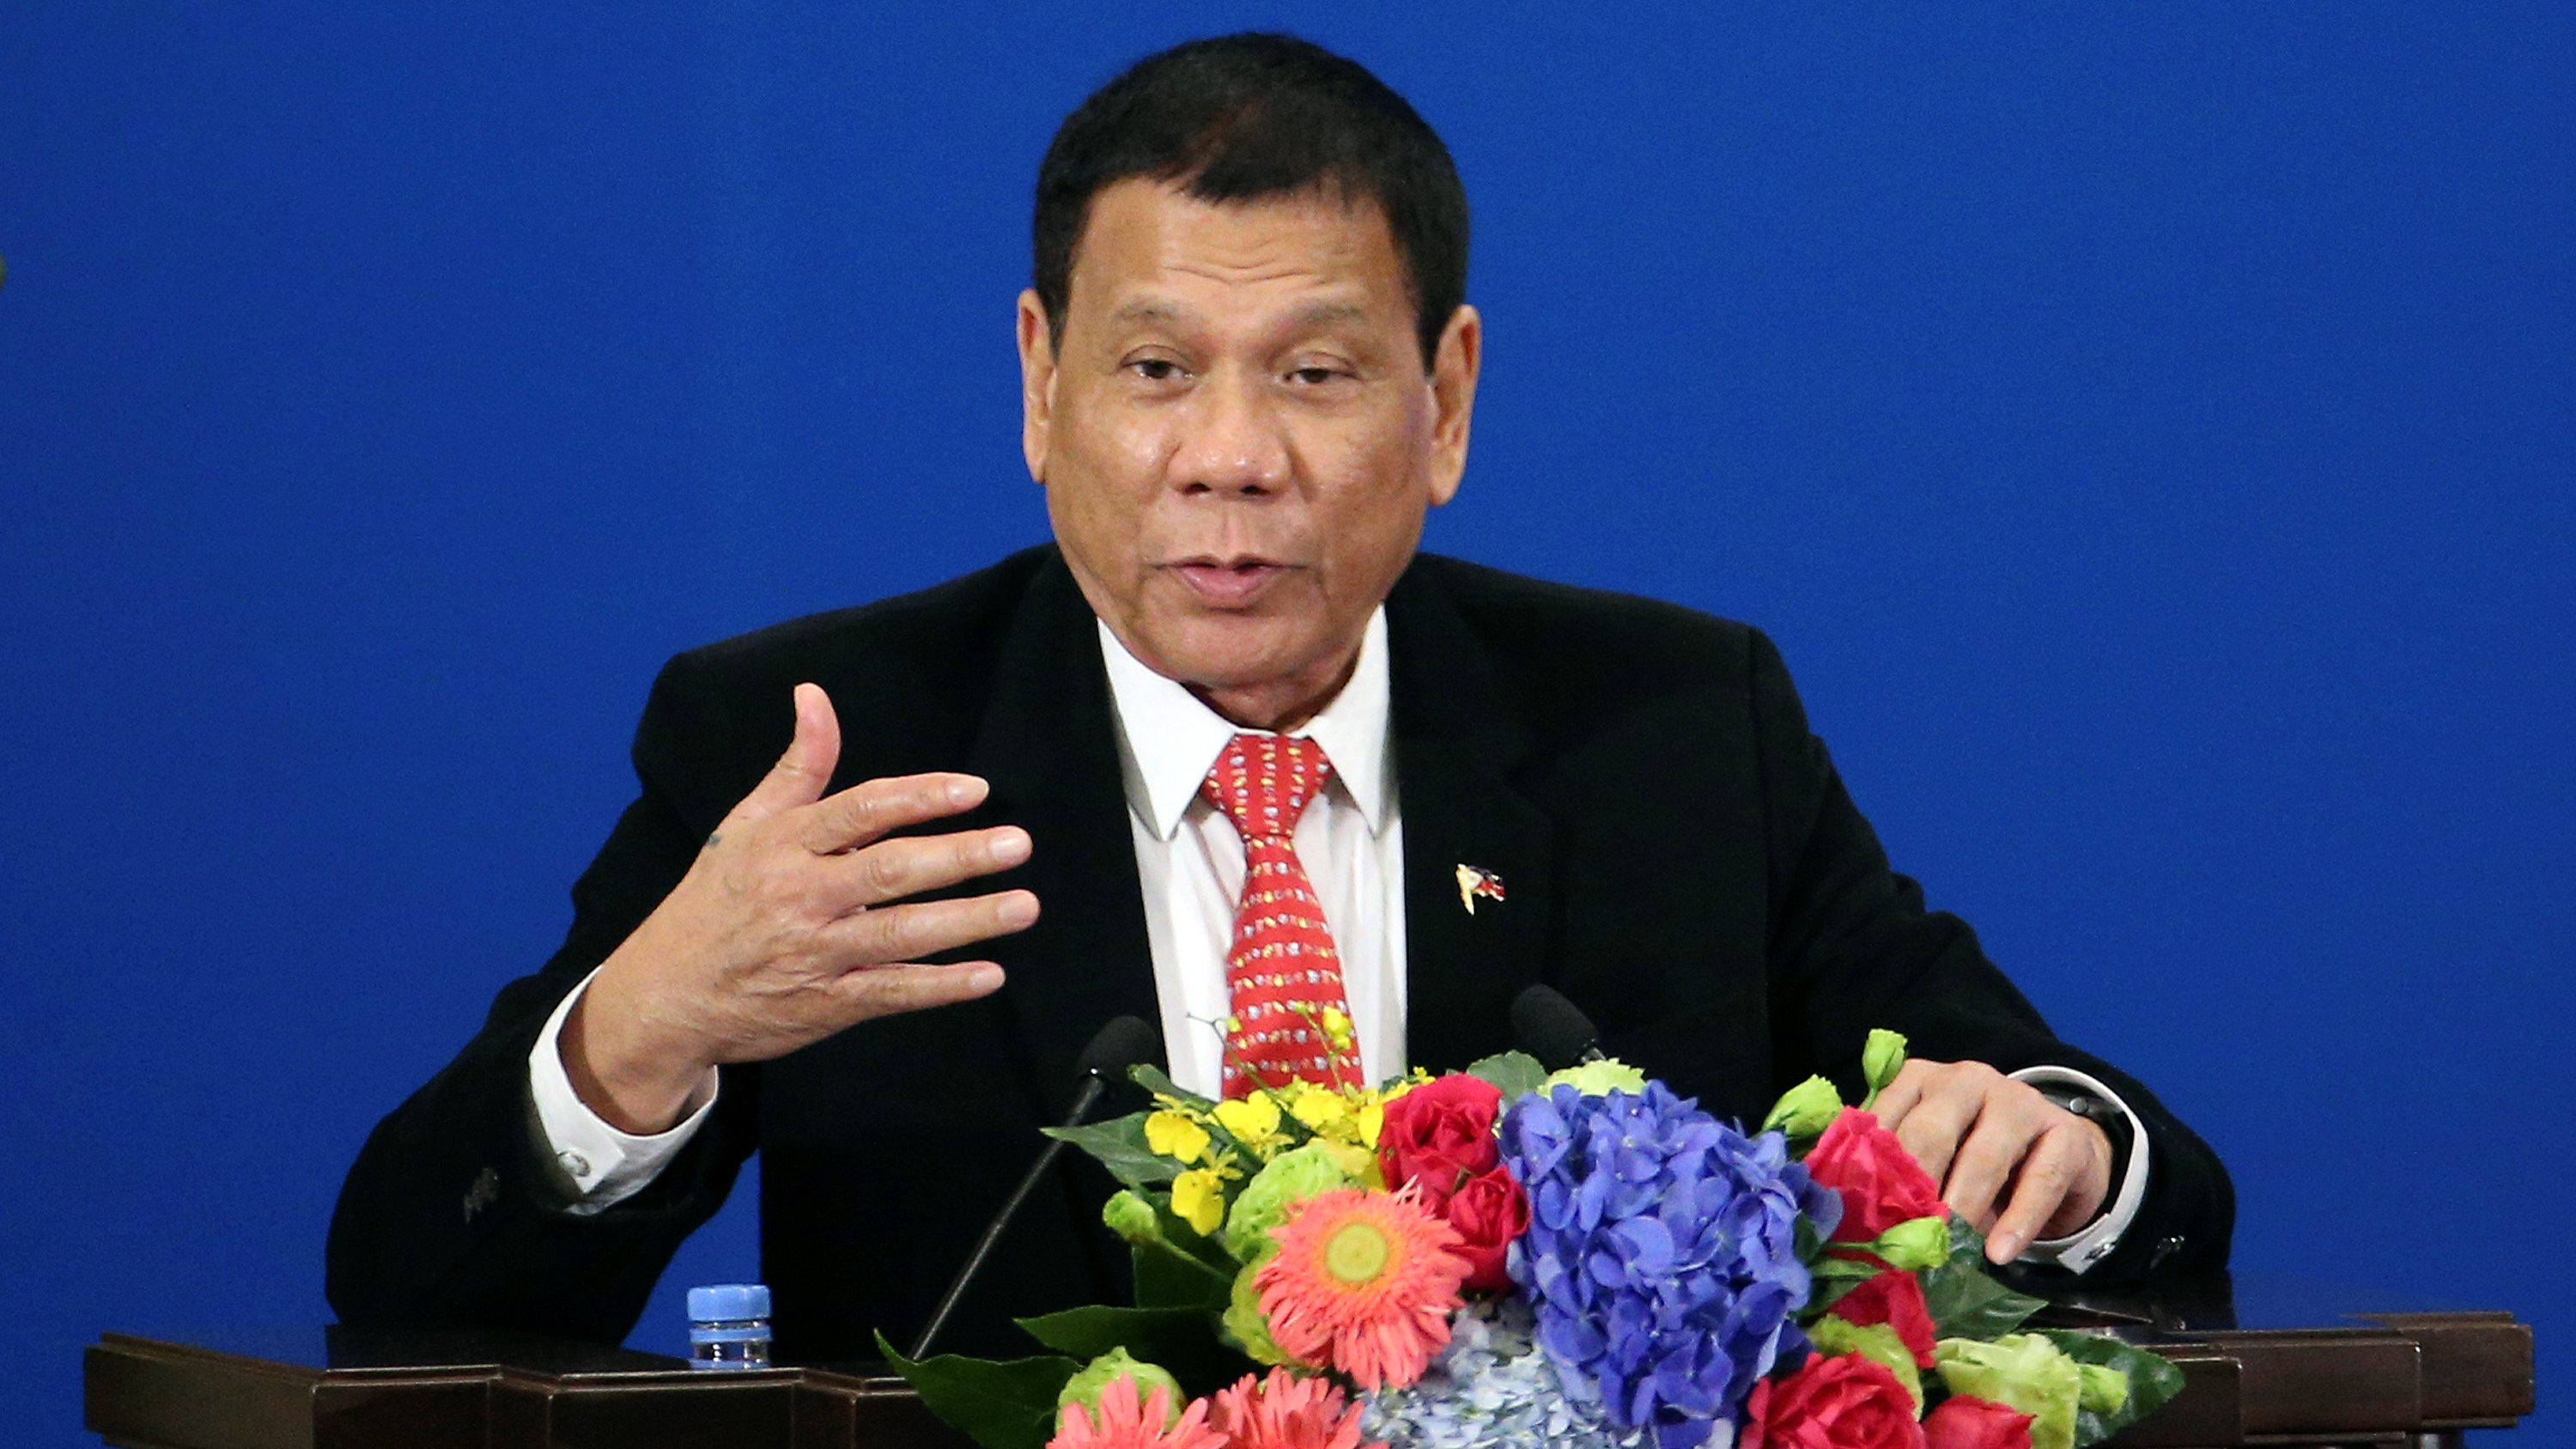 Philippines President Rodrigo Duterte makes a speech during the Philippines - China Trade and Investment Forum at the Great Hall of the People in Beijing, China, October 20, 2016.